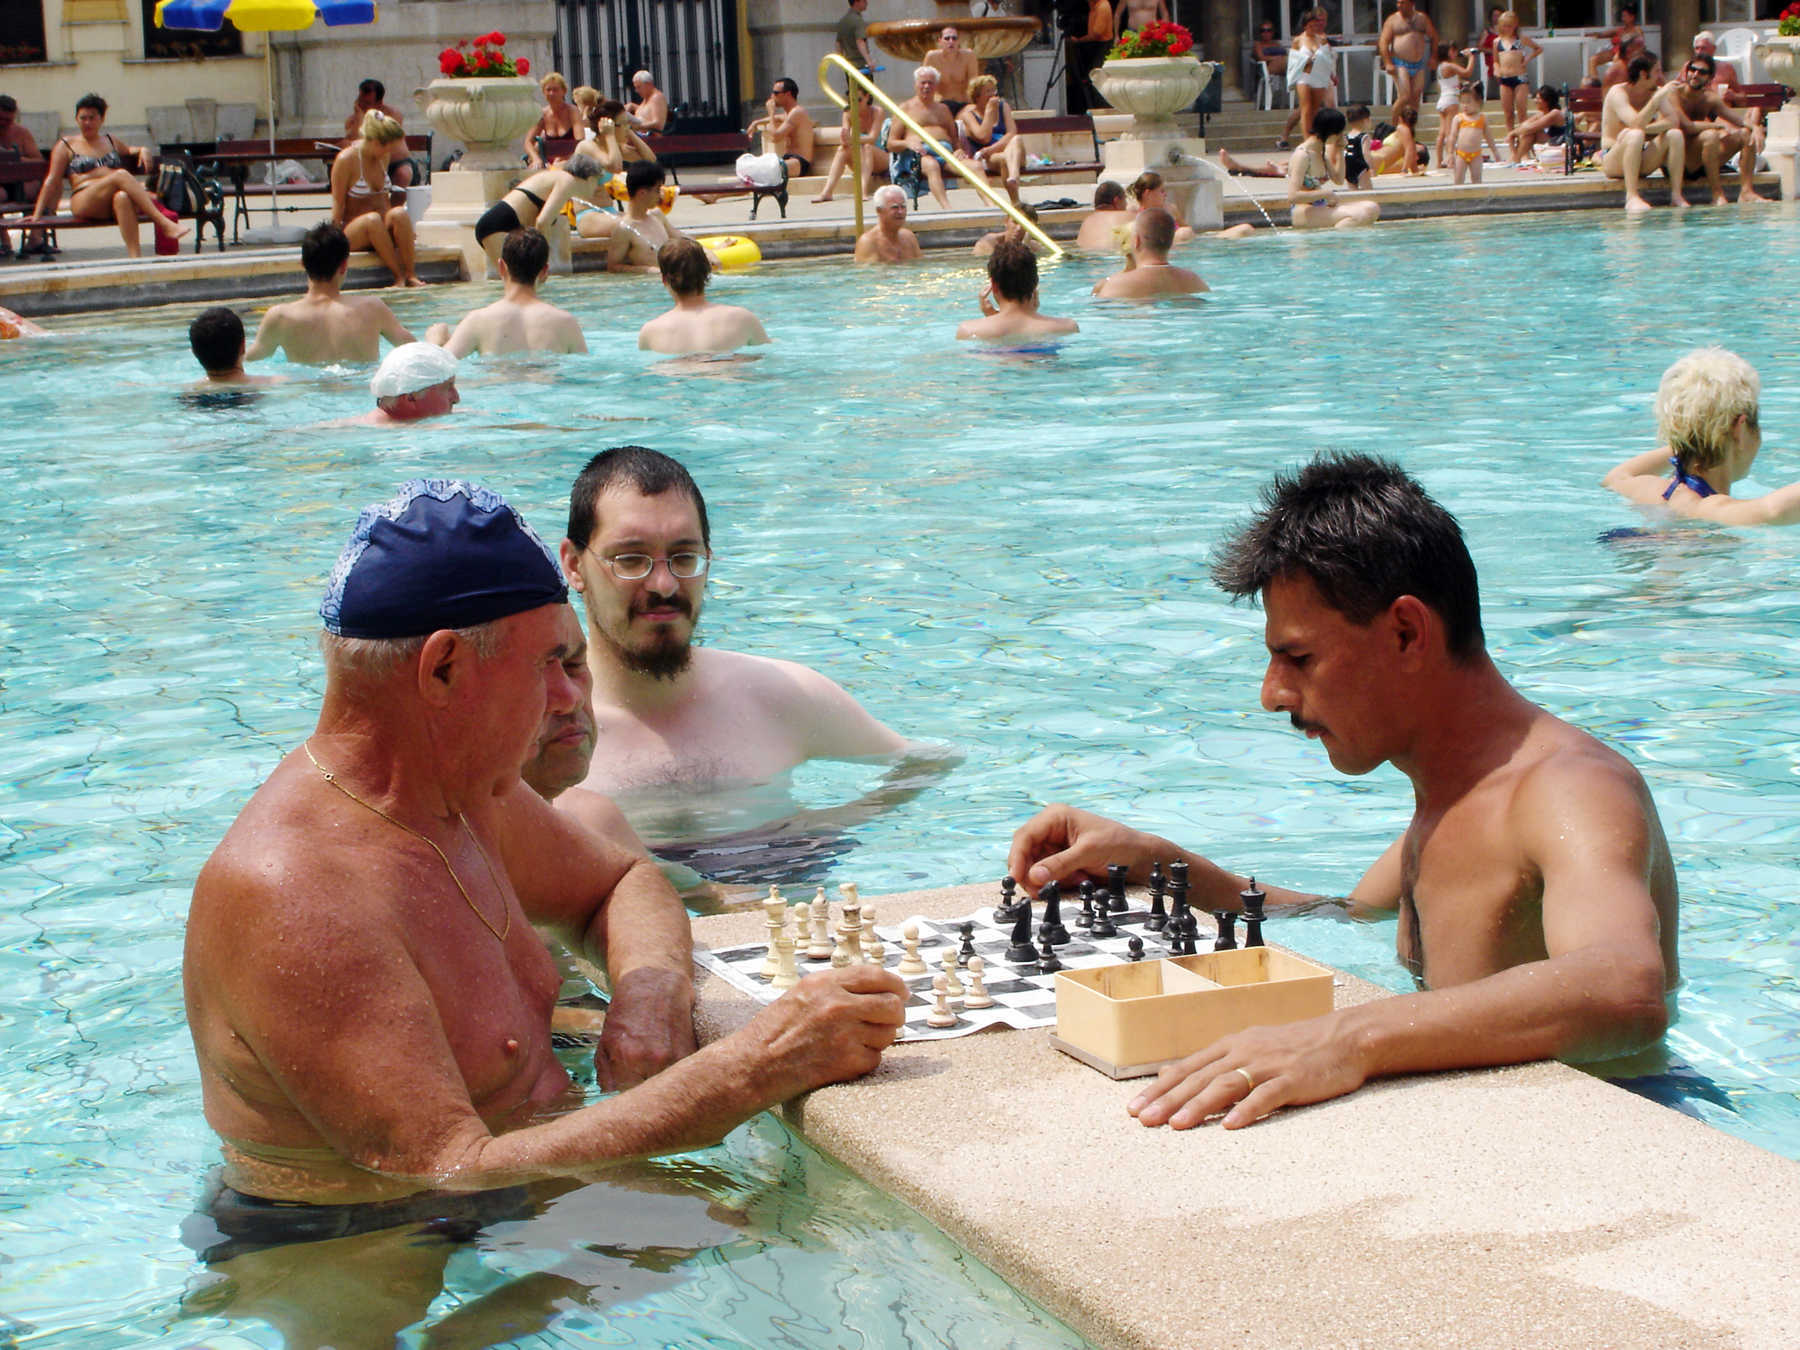 Chess Players, Szechenyi Baths, Budapest, Hungary